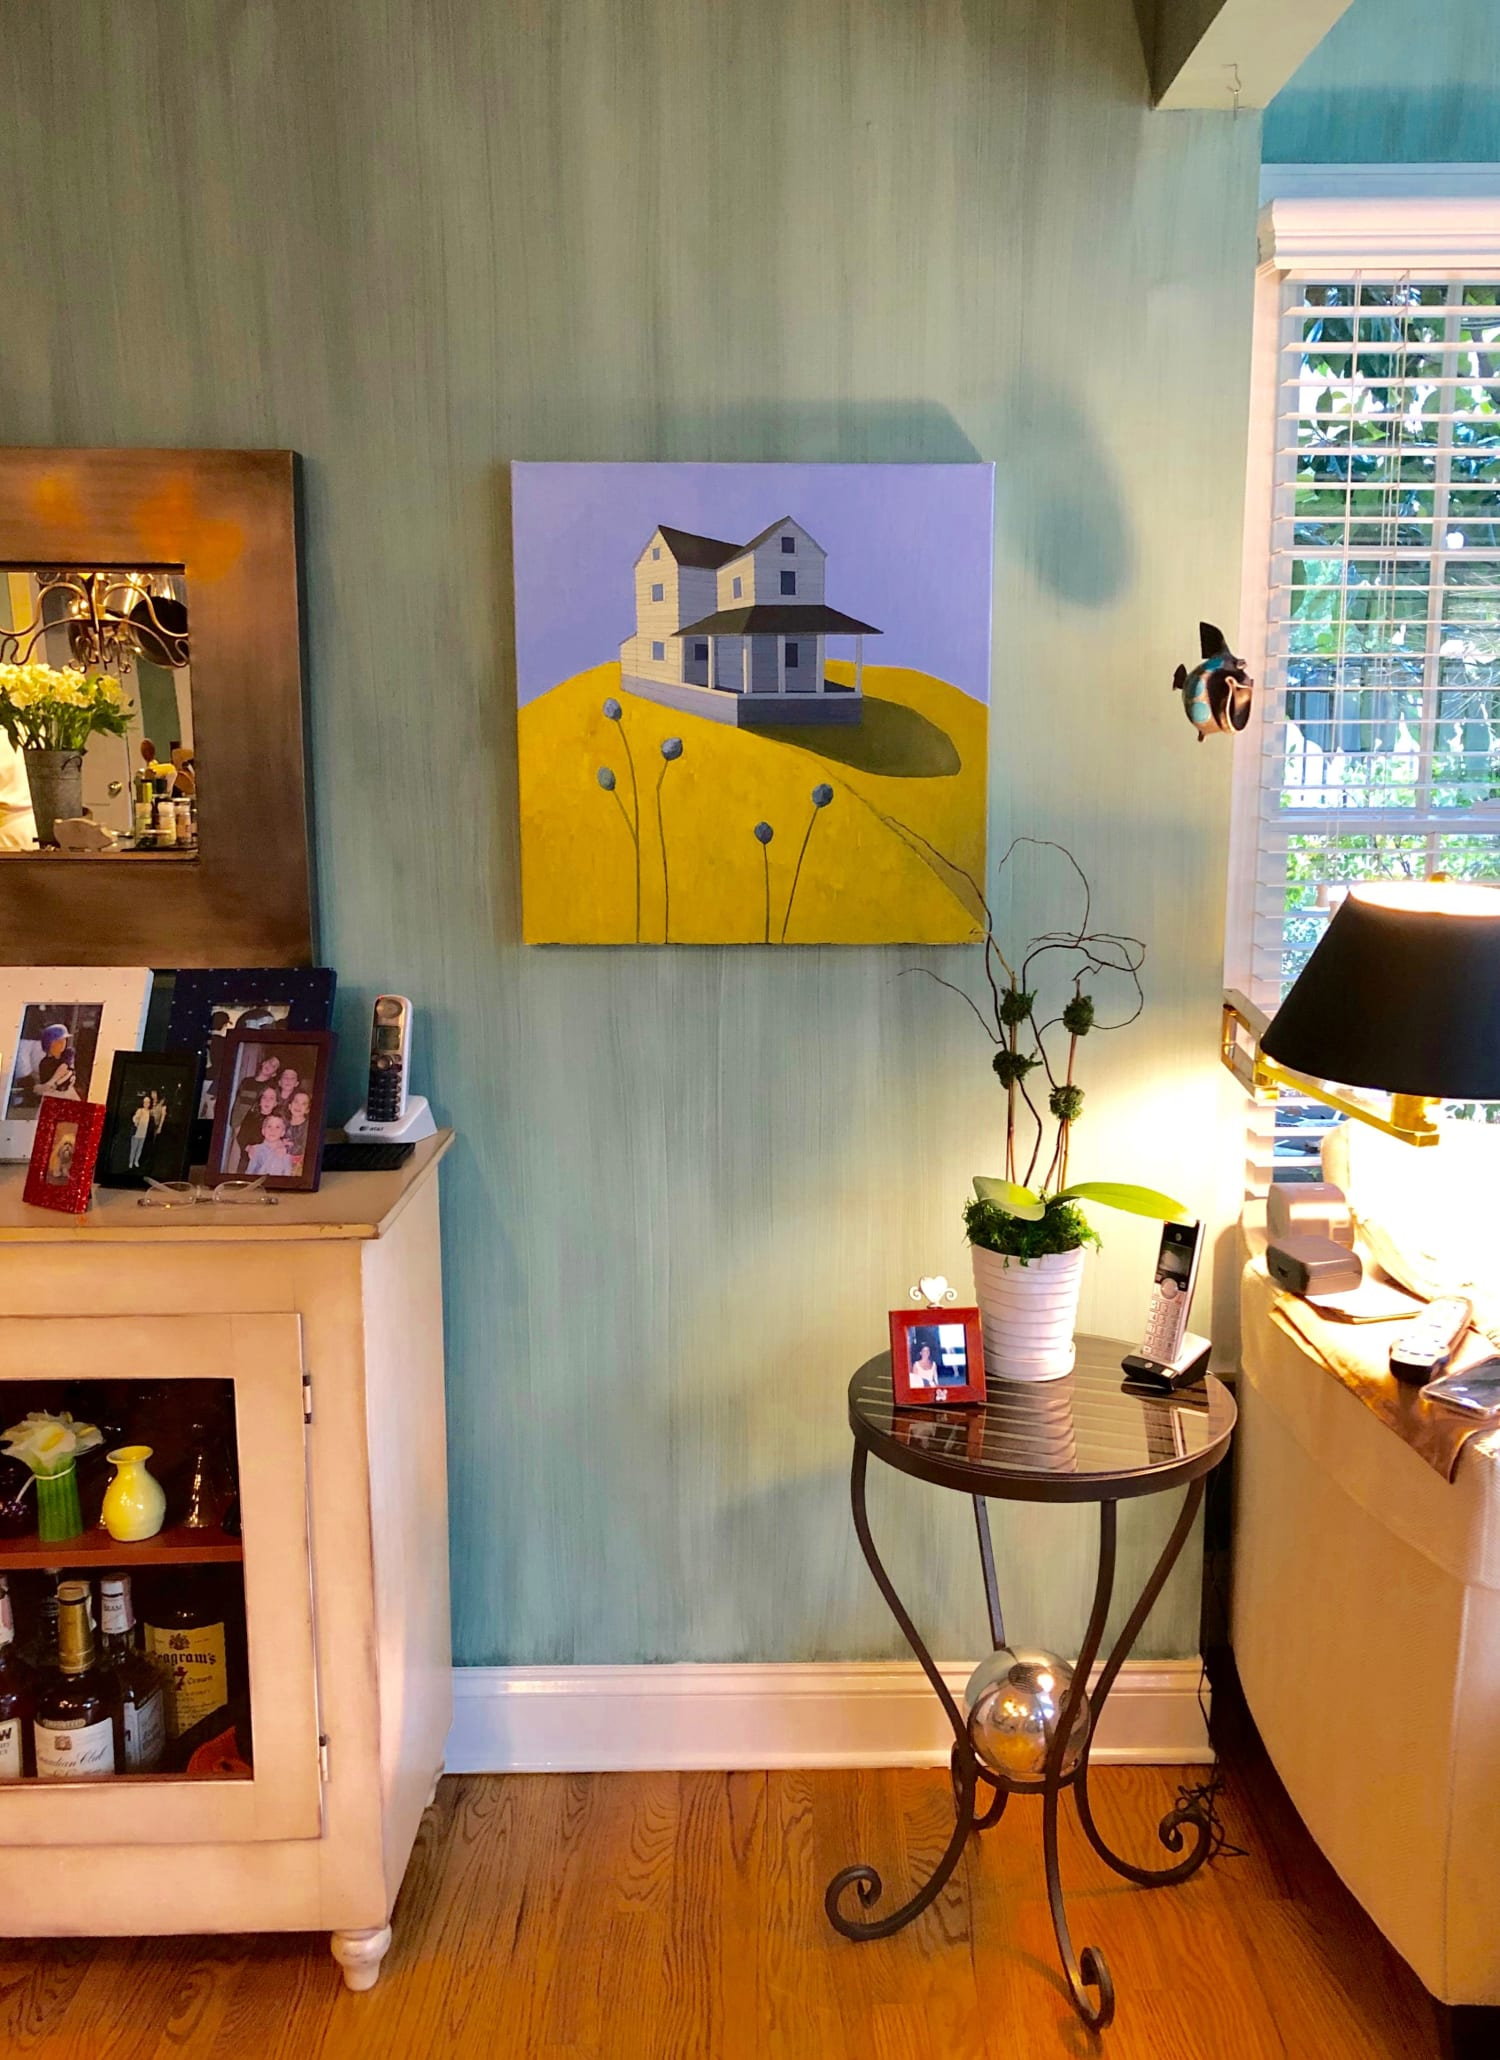 White farmhouse on yellow hill oil painting